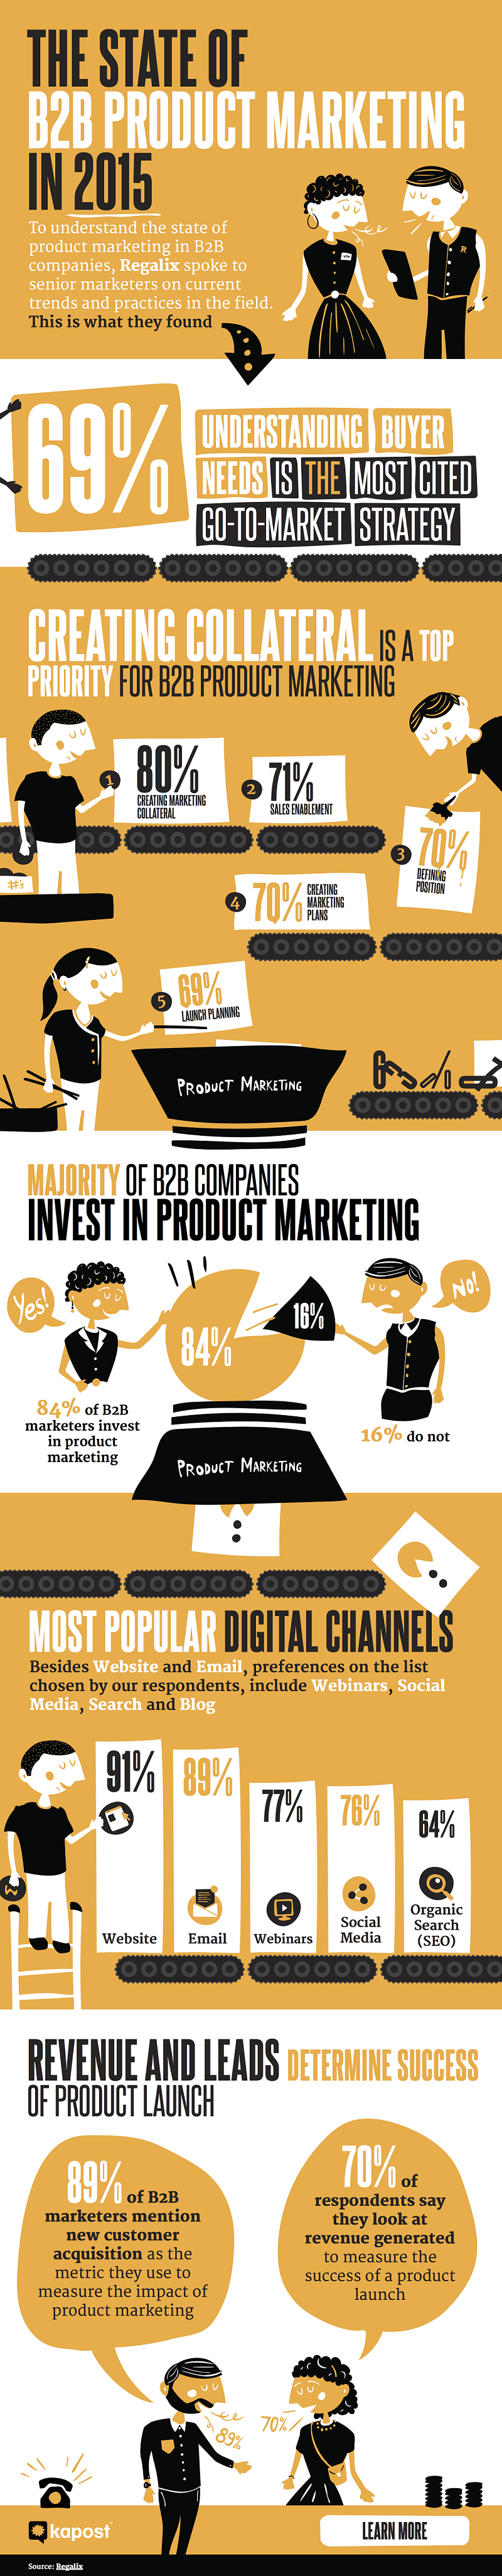 The State of B2B Product Marketing